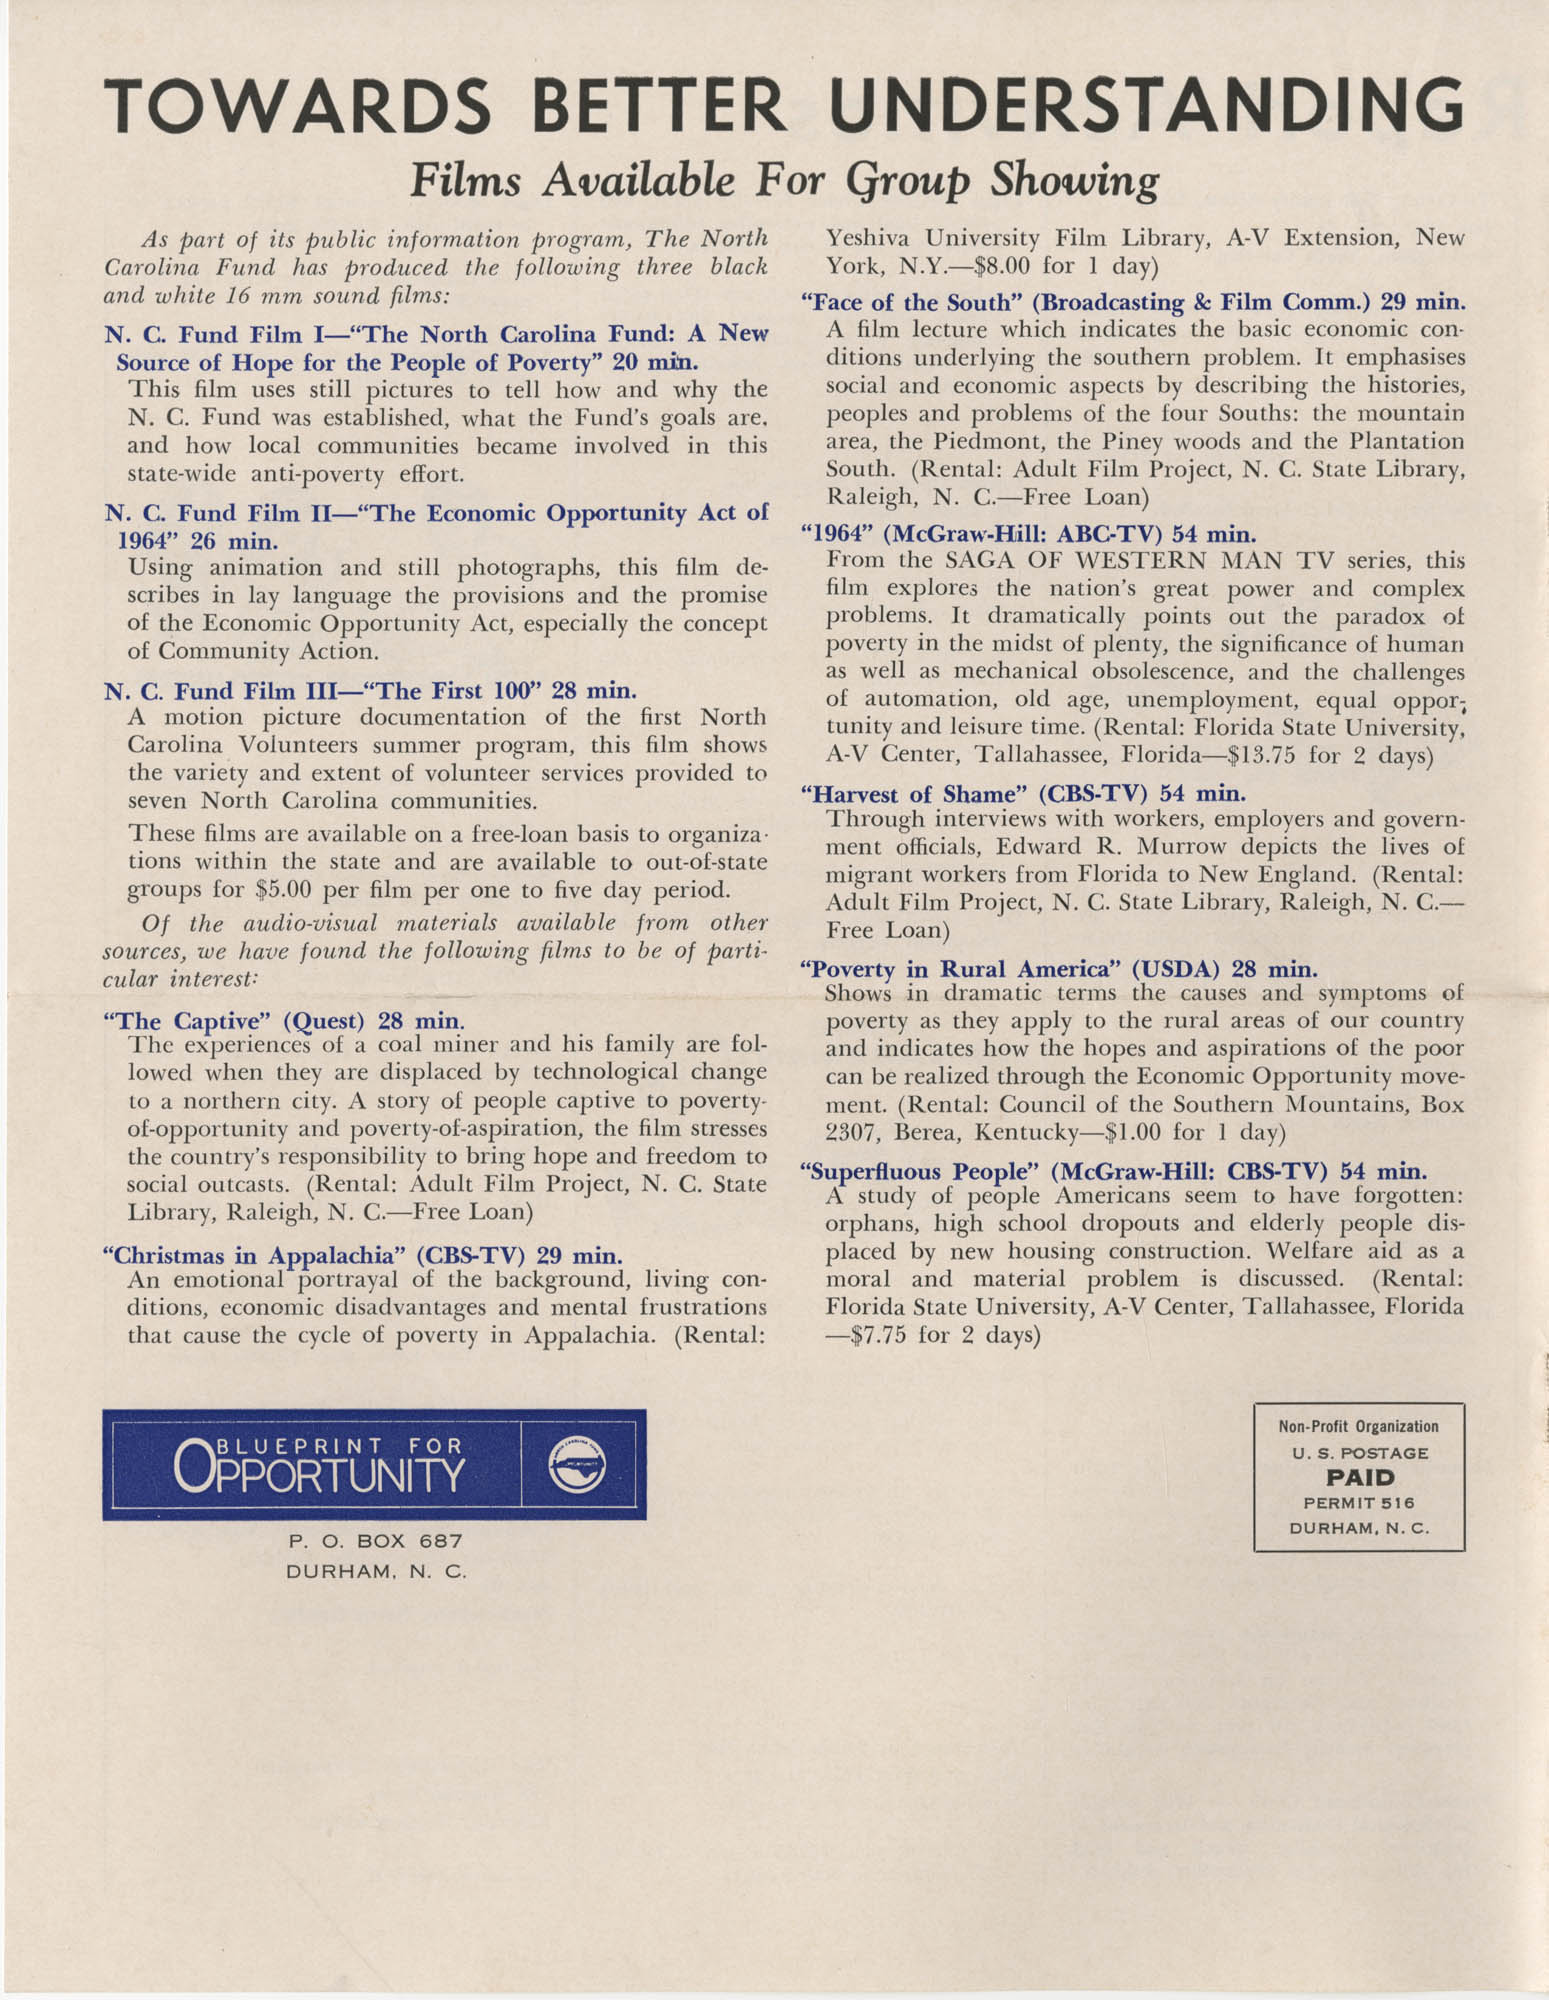 Blueprint for Opportunity, Vol. 2, No. 3, Page 8